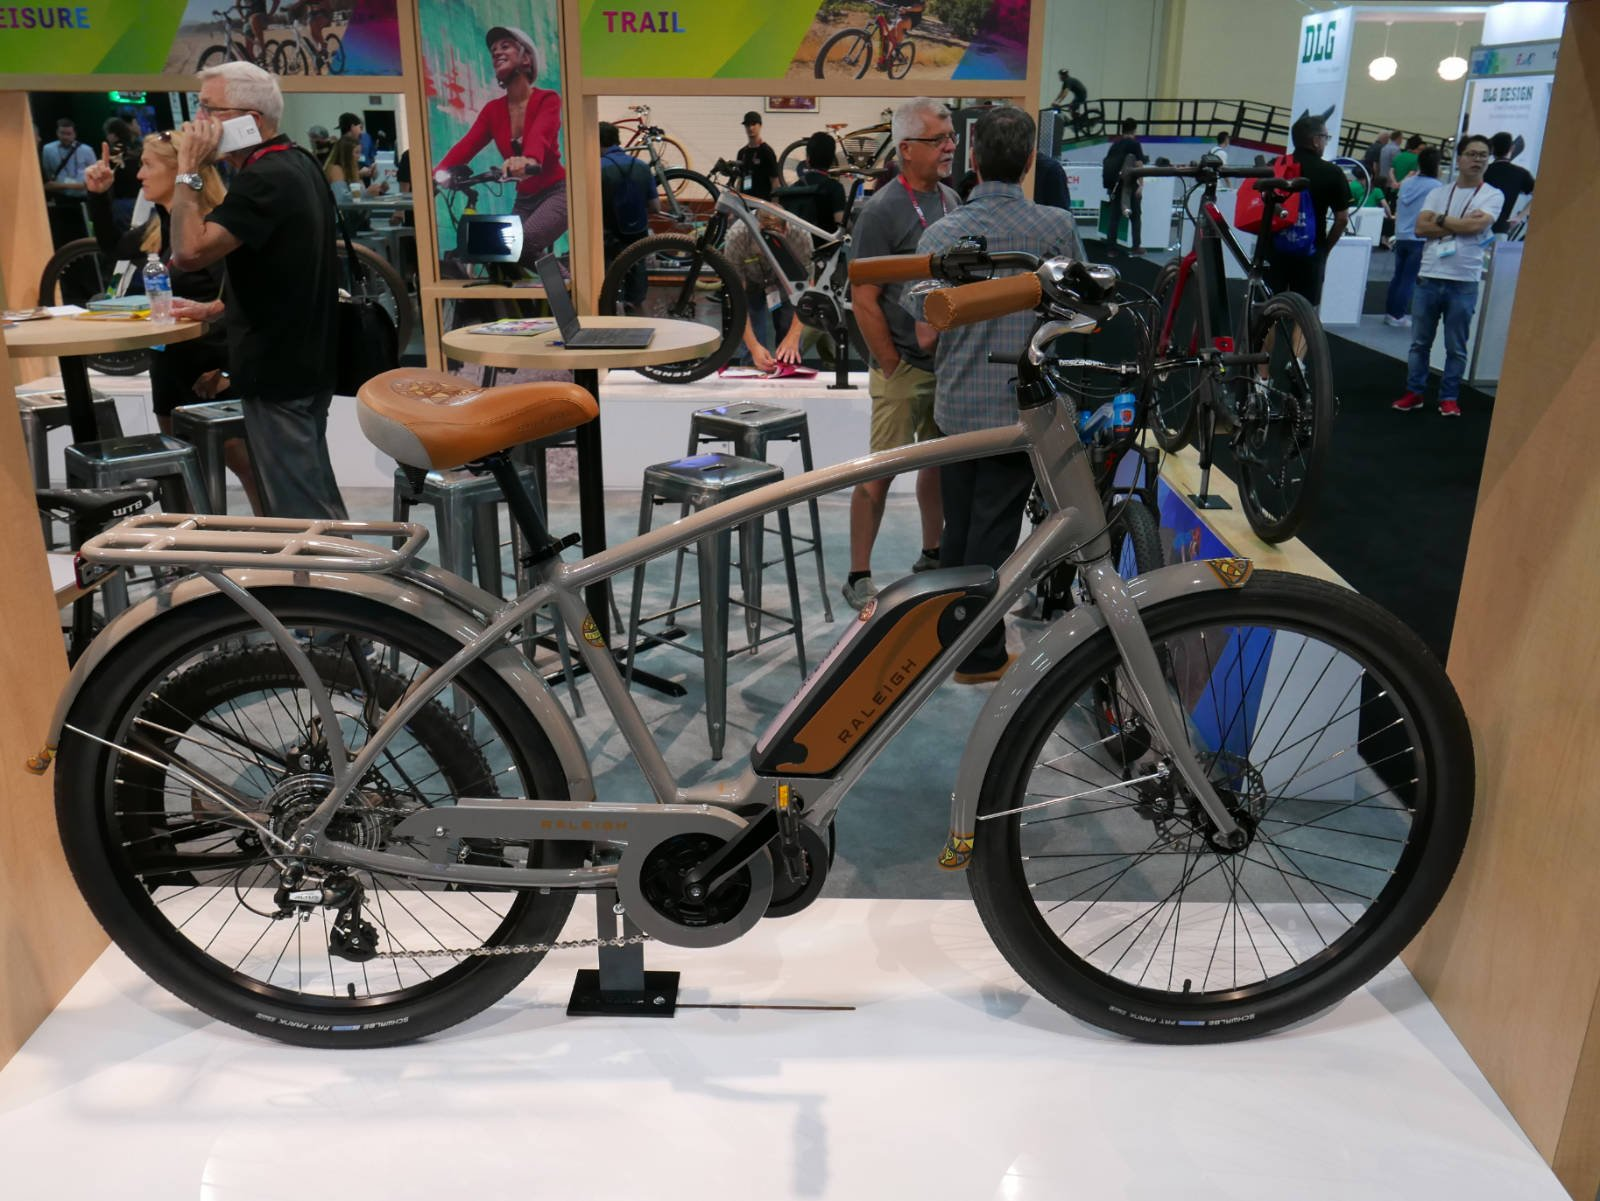 Interbike 2017 show report  Trends and new products - BikePortland.org 1f4445727